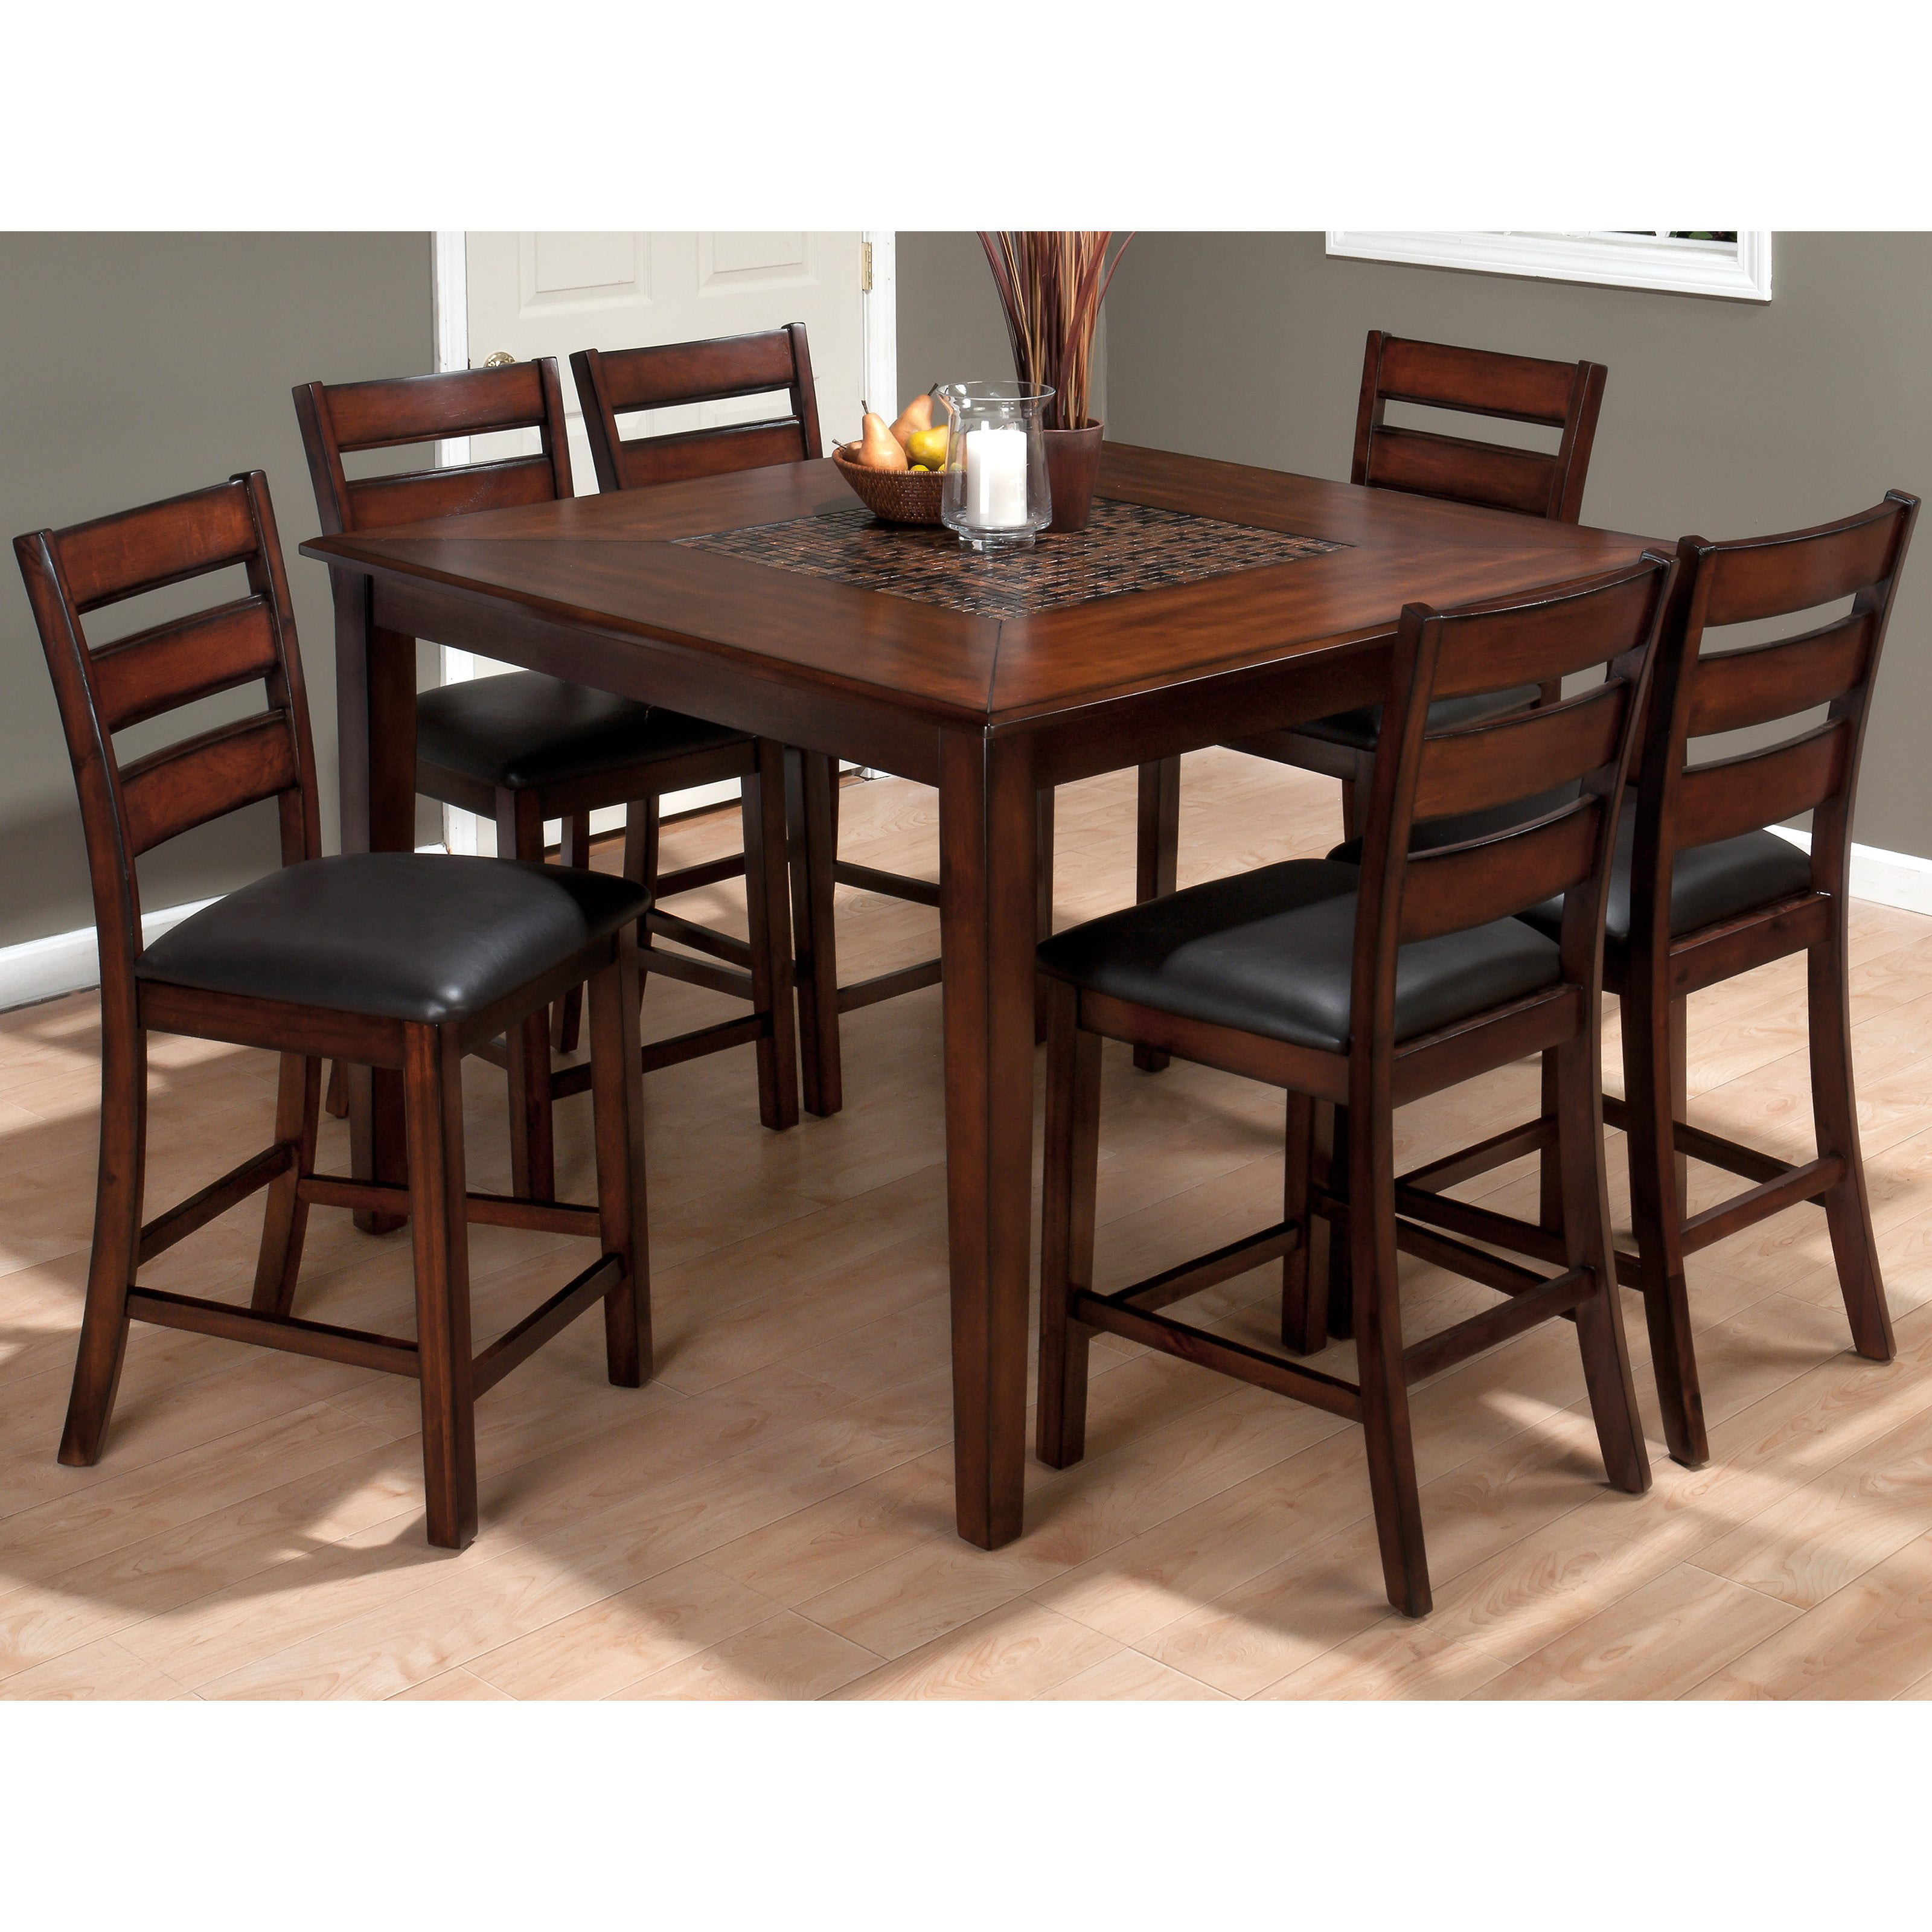 Jofran Baroque Brown 7 Piece Counter Height Dining Table Set   Walmart.com